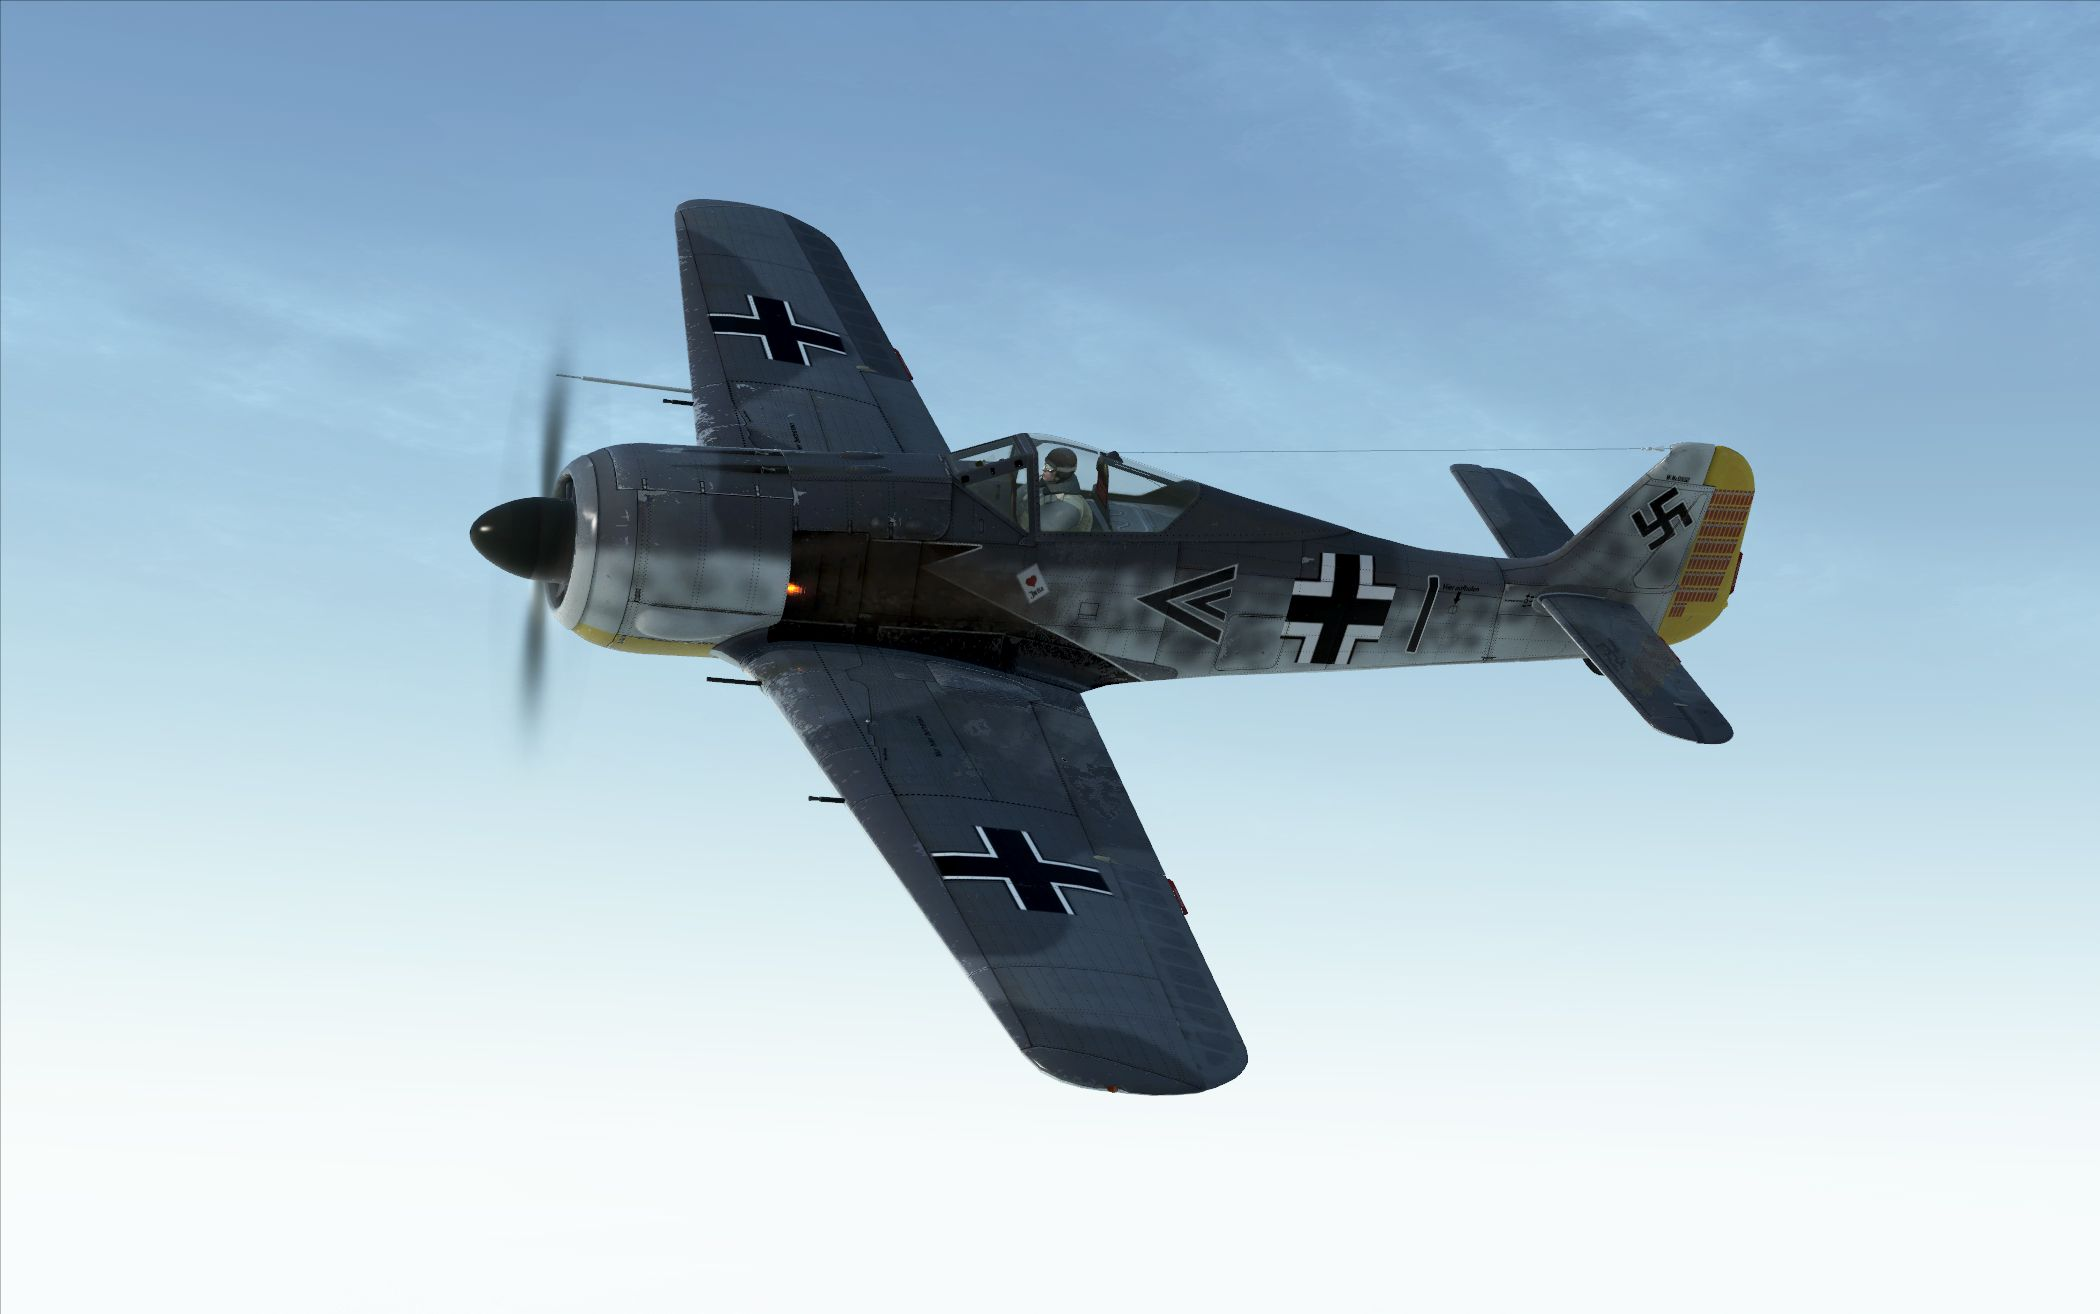 """Fw-190A2 Stab 3 JG/26 flown by Hauptmann Josef """"Pips"""" Priller in Wevelghem Belgium June 1942. This version has the large black marking on the side of the front of the fuselage this is probably not accurate hence I did two versions of this Fw-190A2."""